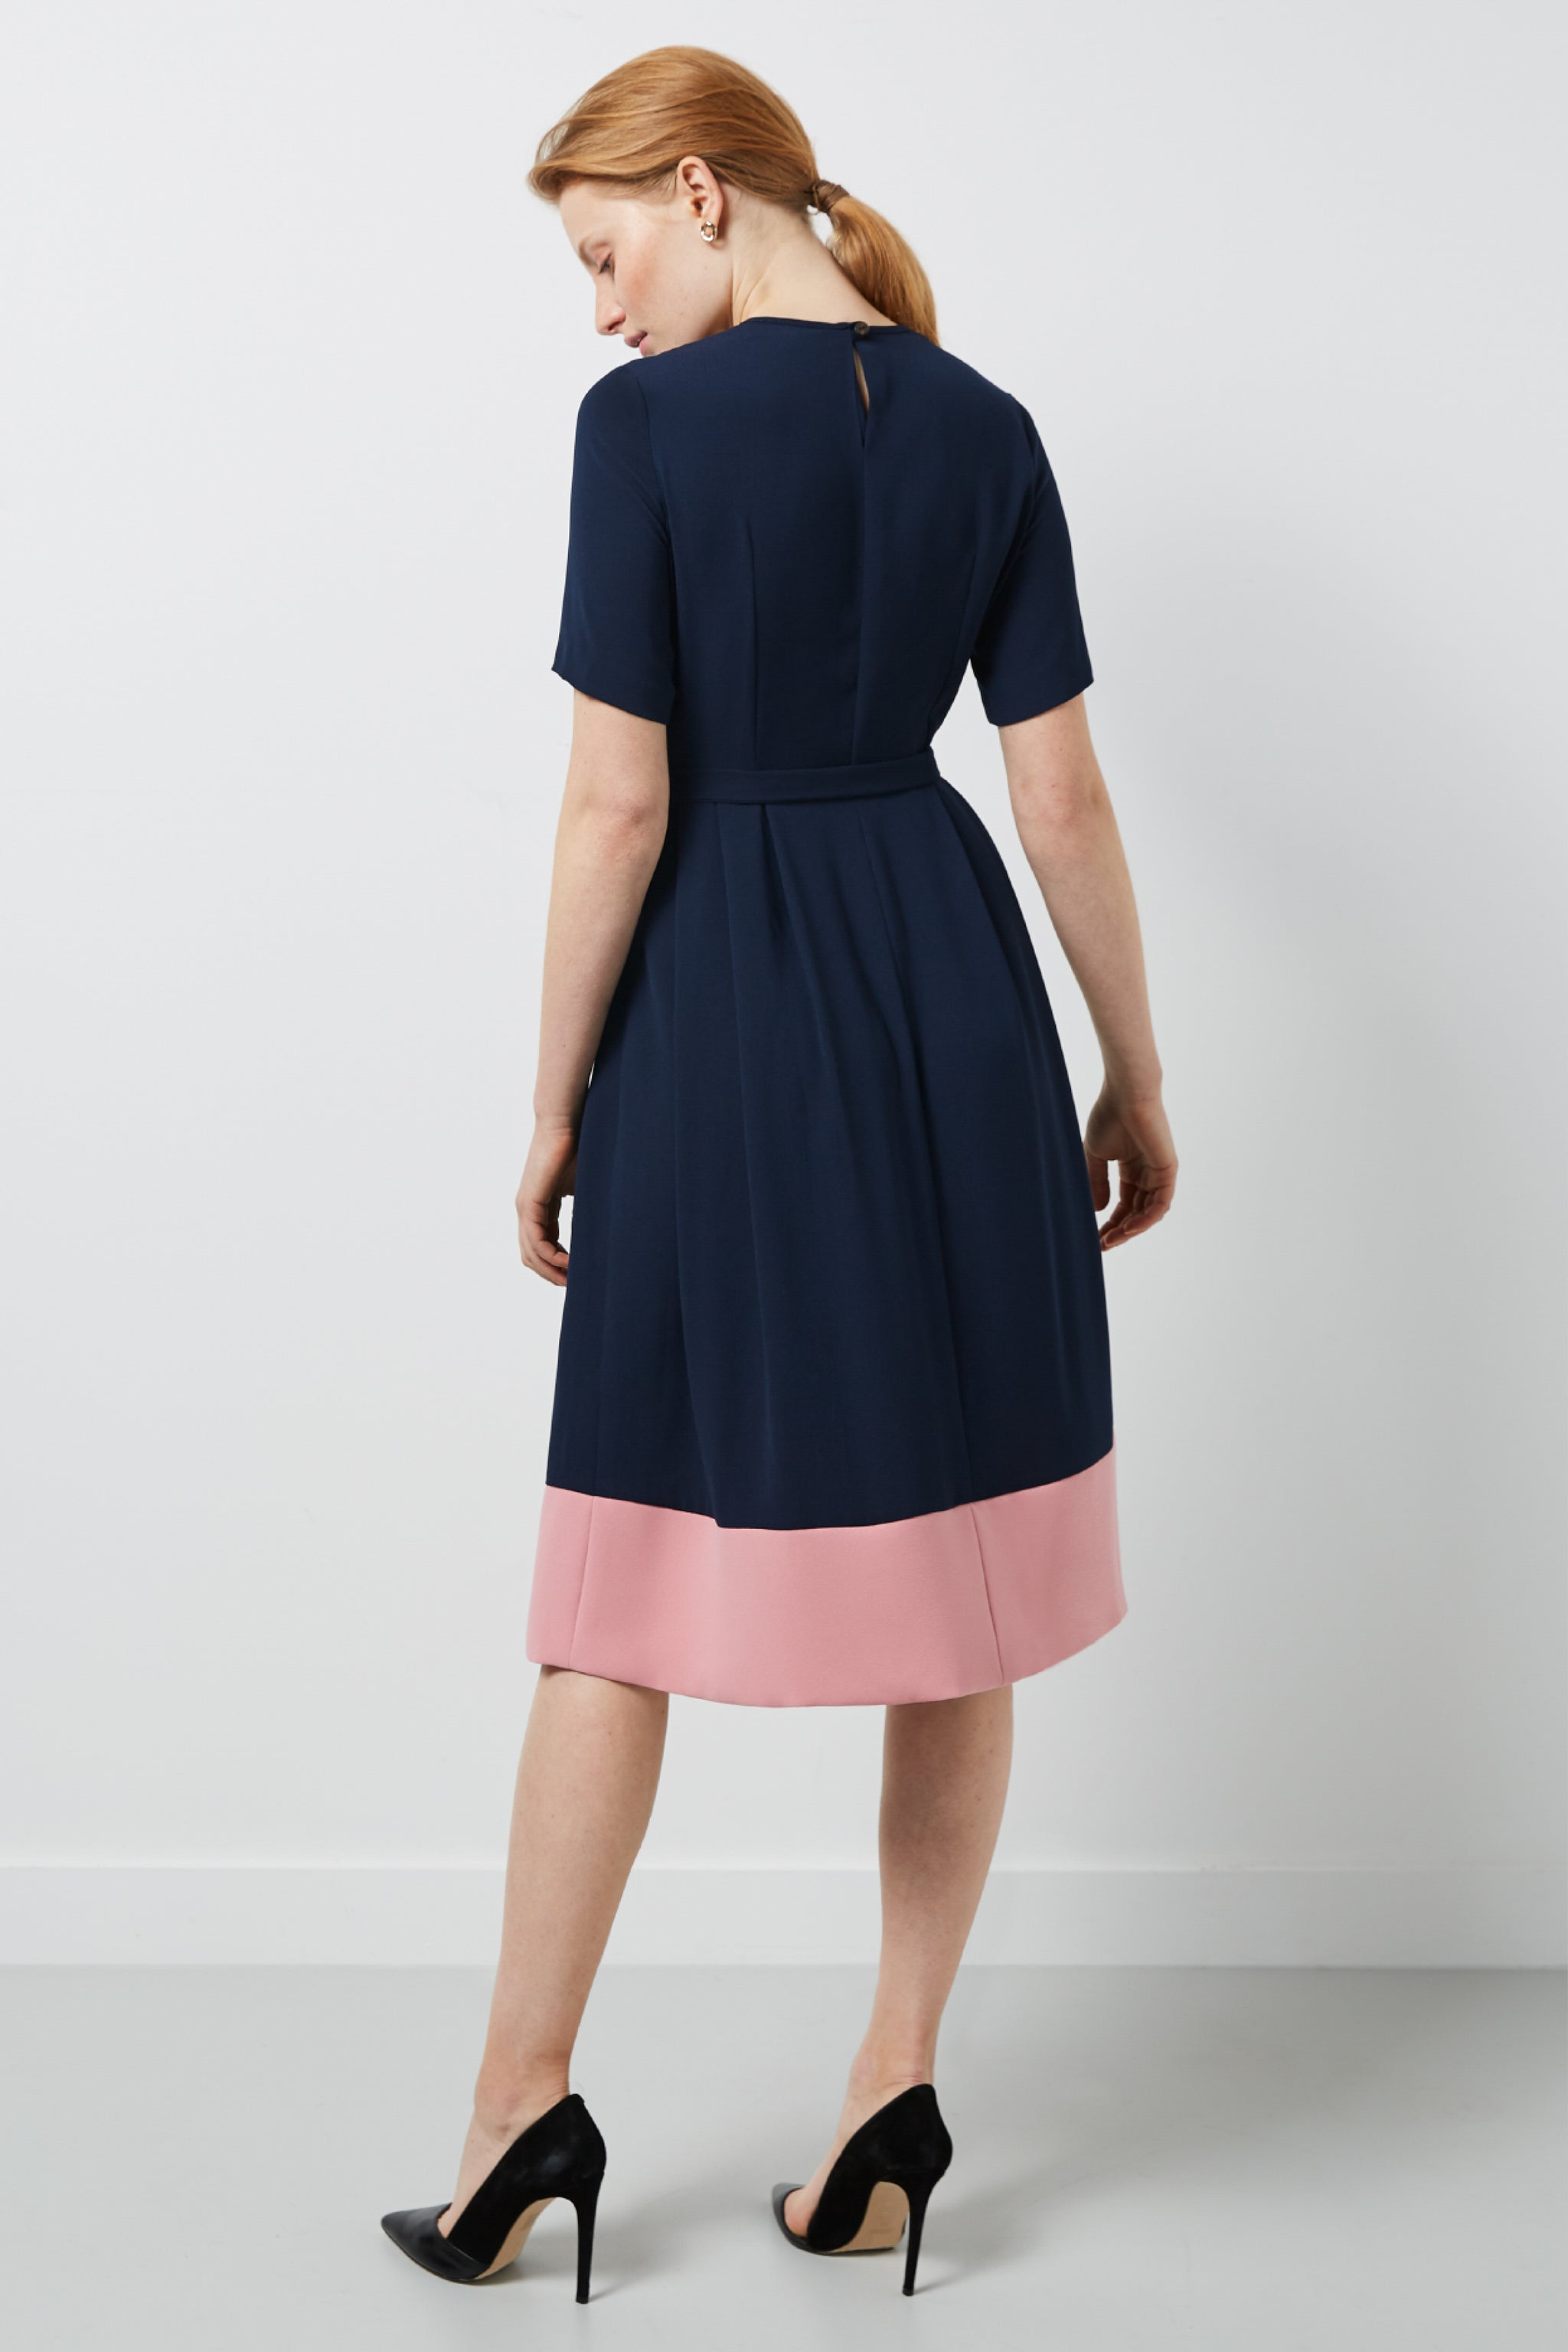 Norfolk Navy and Pink Dress